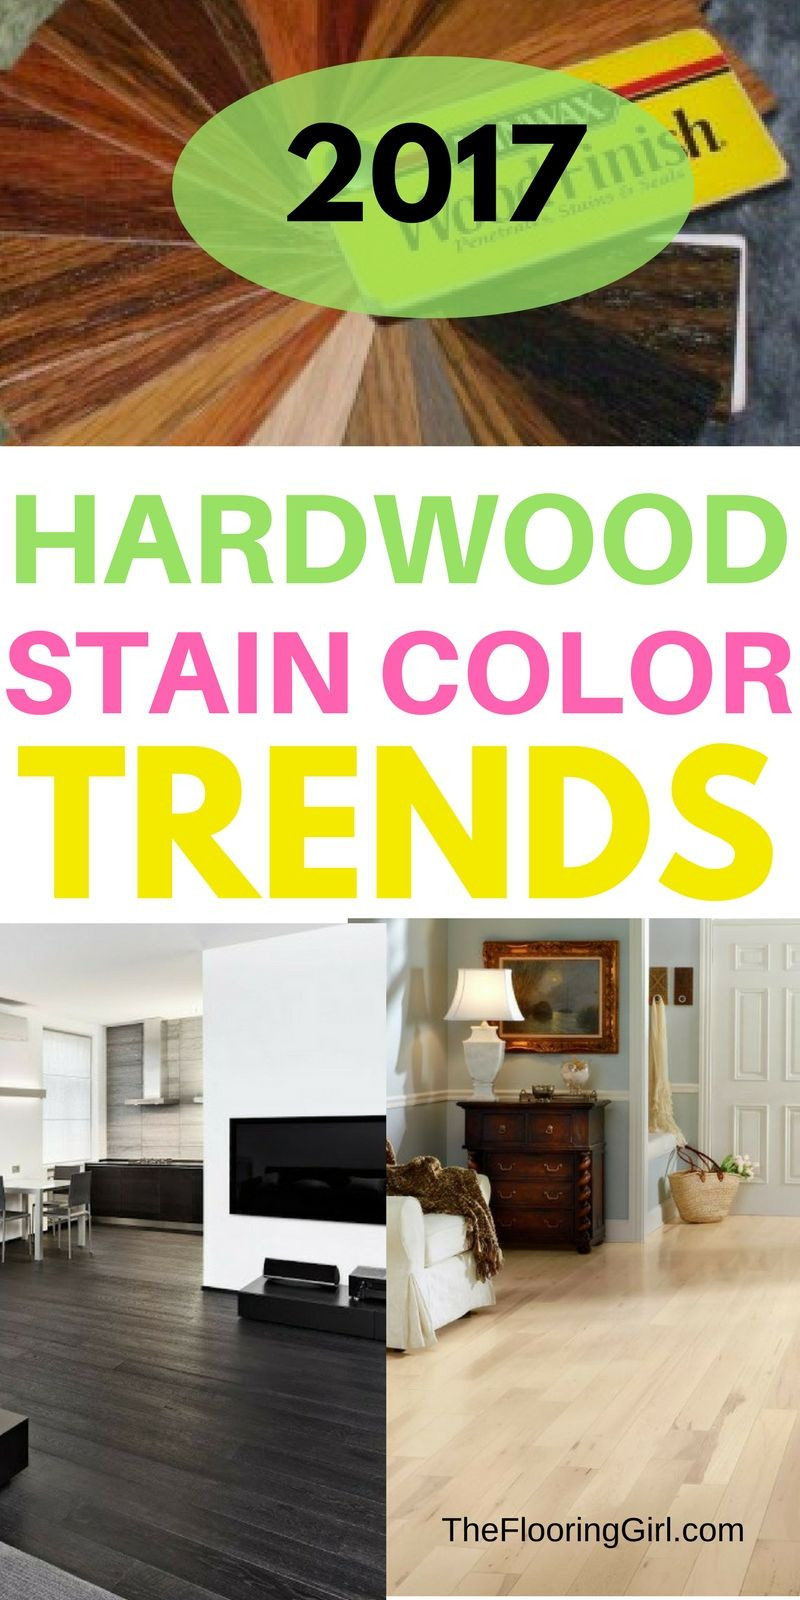 how to install the hardwood floor by yourself of hardwood flooring stain color trends 2018 more from the flooring intended for hardwood flooring stain color trends for 2017 hardwood colors that are in style theflooringgirl com